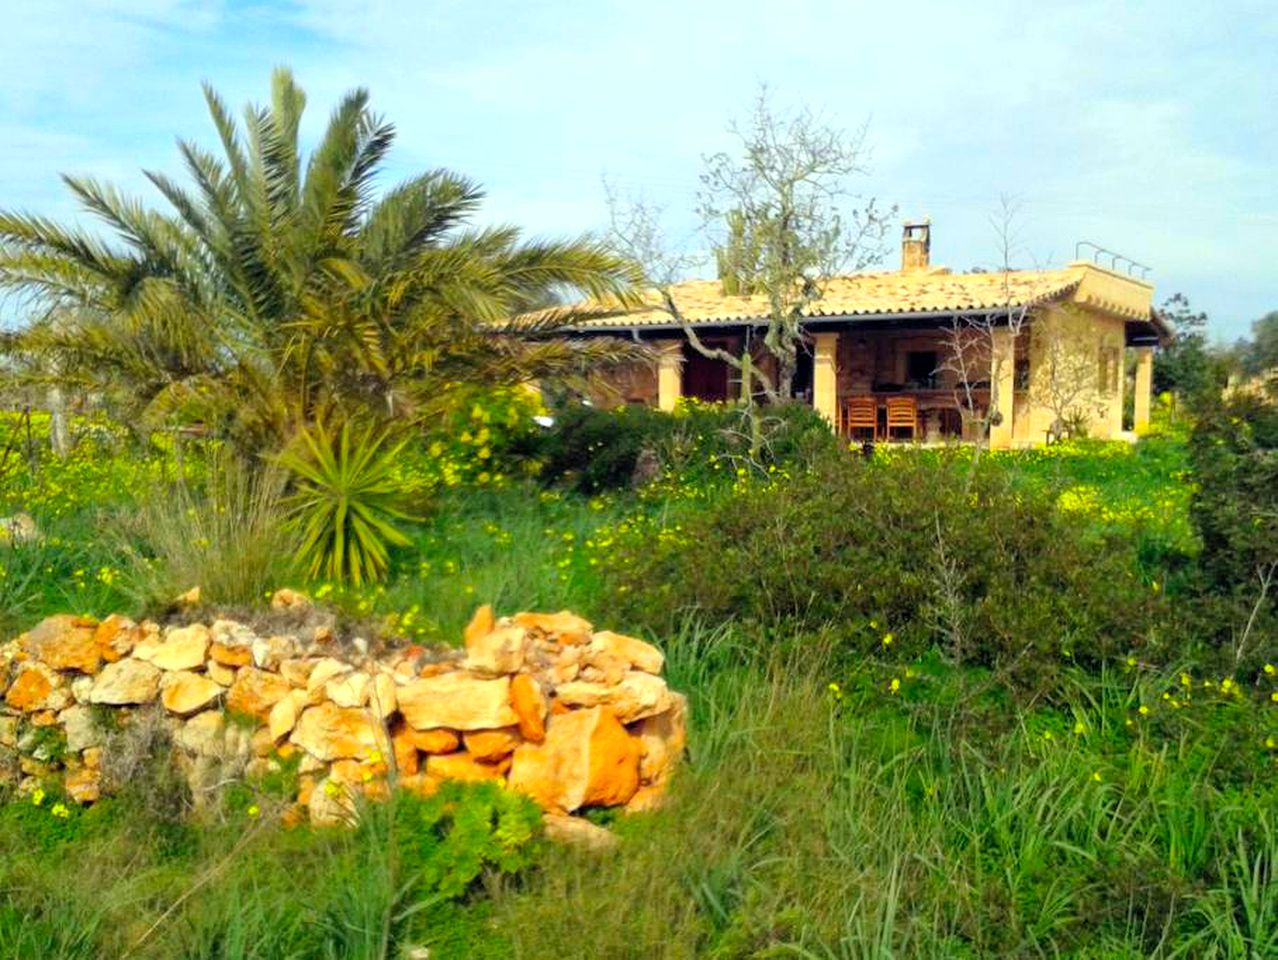 Cottages (Ses Salines, Balearic Islands, Spain)